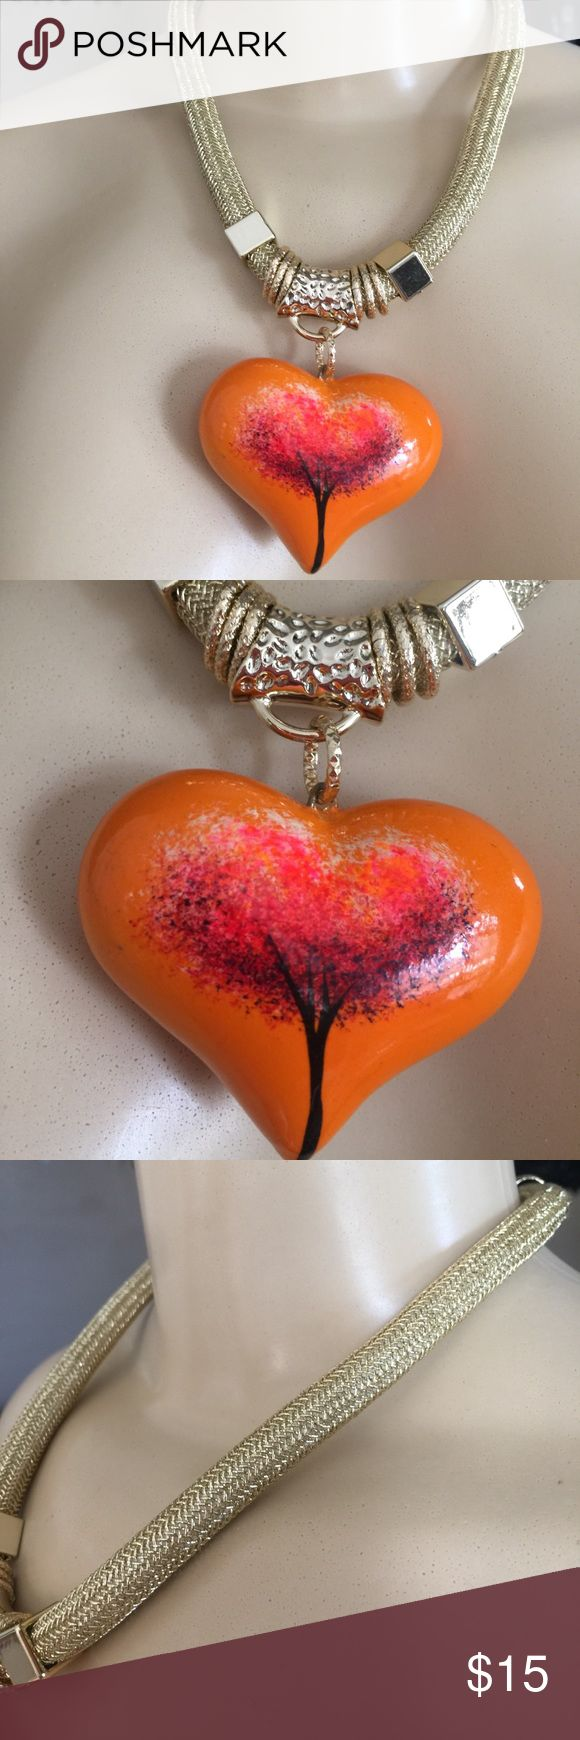 """17"""" women's ceramic heart hand painted necklace Beautiful women's 17"""" women's ceramic heart hand painted necklace autumn (orange). Fabric Wrapped Choker Necklace .Details in golden color .Made in Mexico Jewelry Necklaces"""